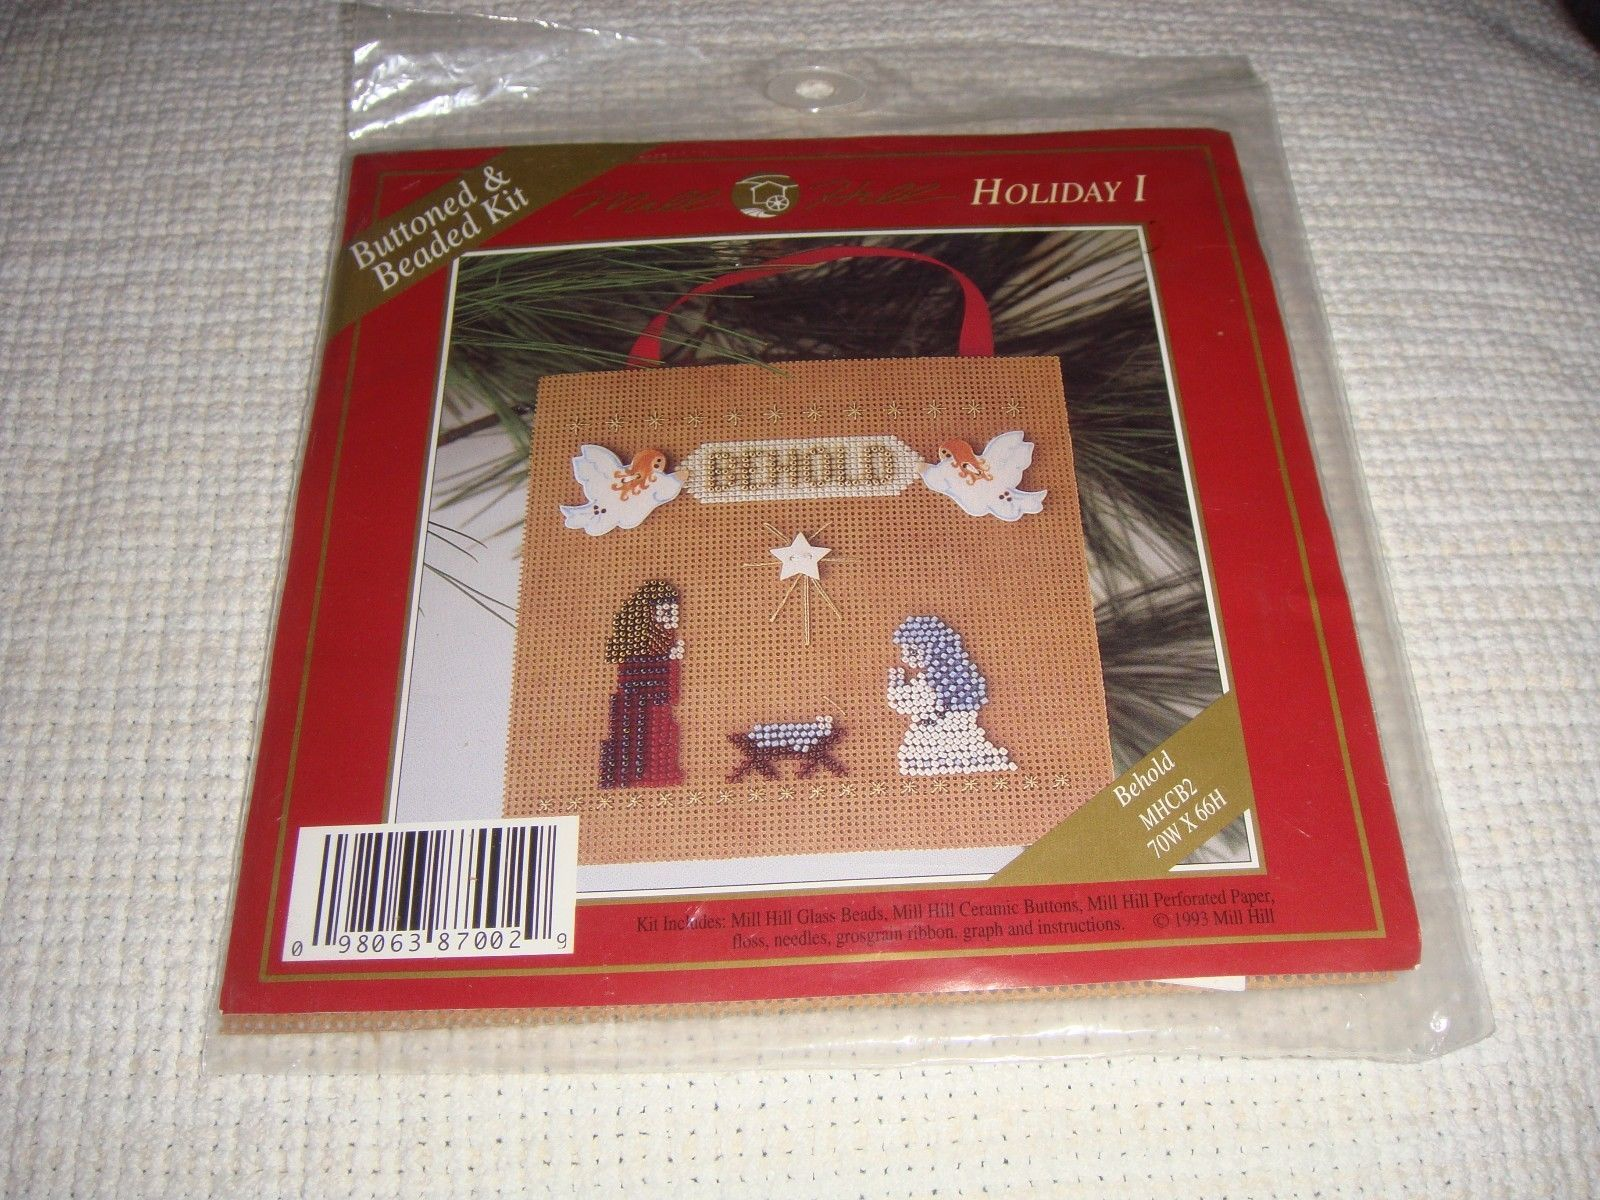 Mill Hill Behold Holiday I Buttoned & Beaded Cross Stitch Kit image 3